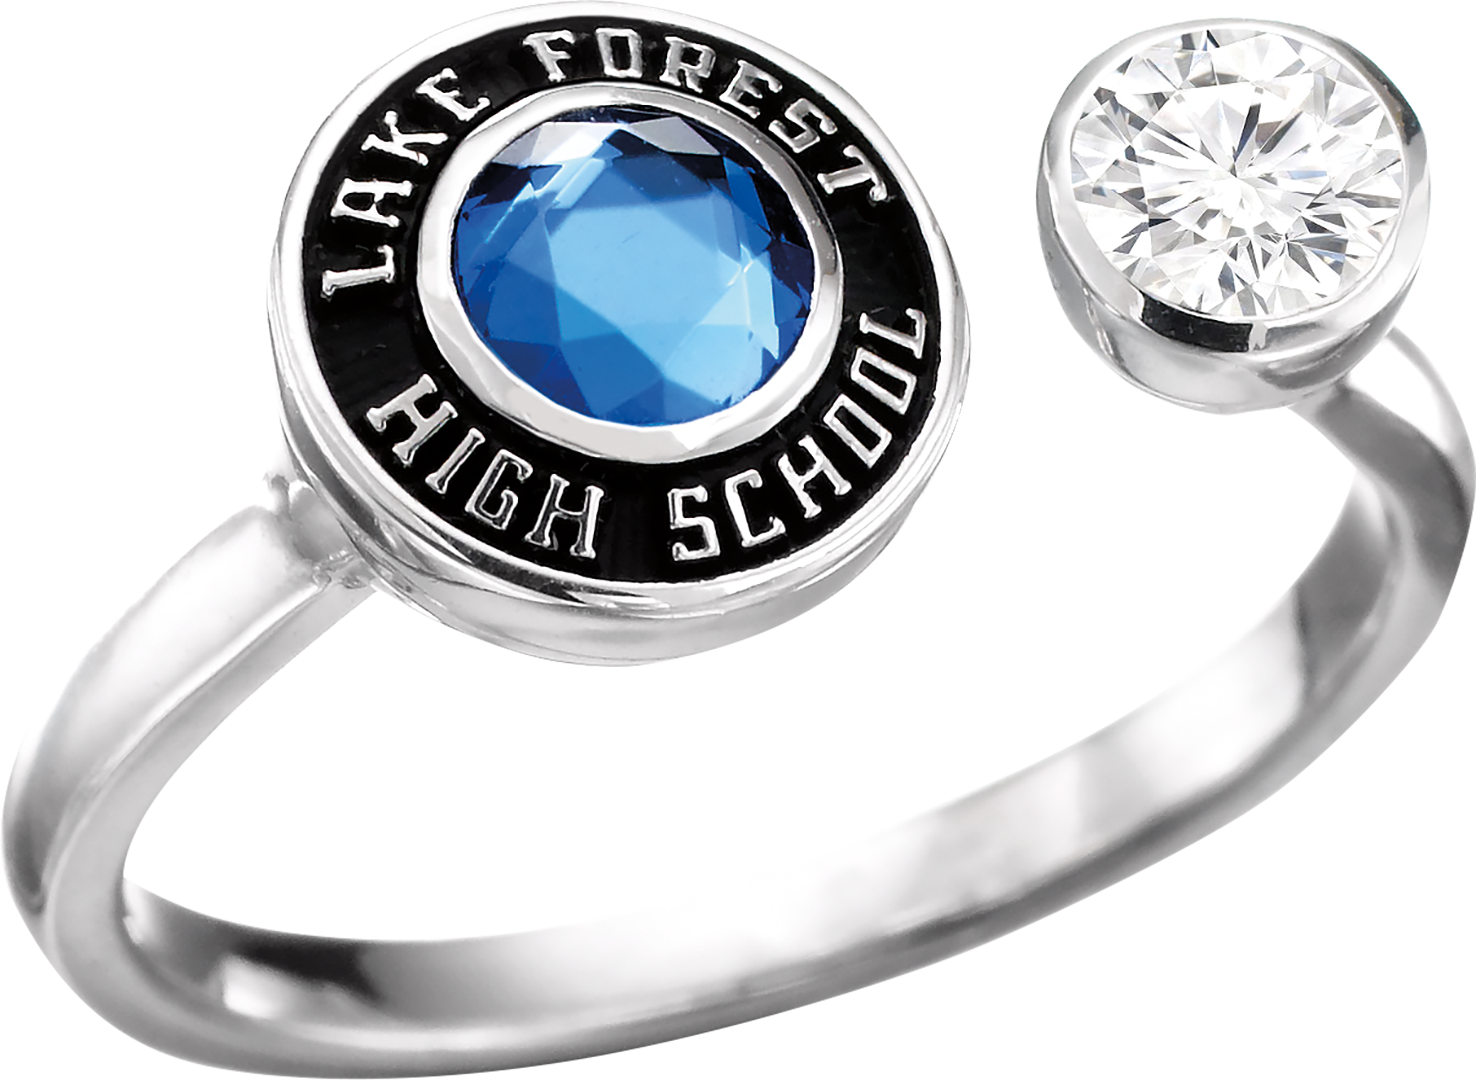 New Luxe Side By Side L28 Class Rings High School Engagement Rings High School Classes